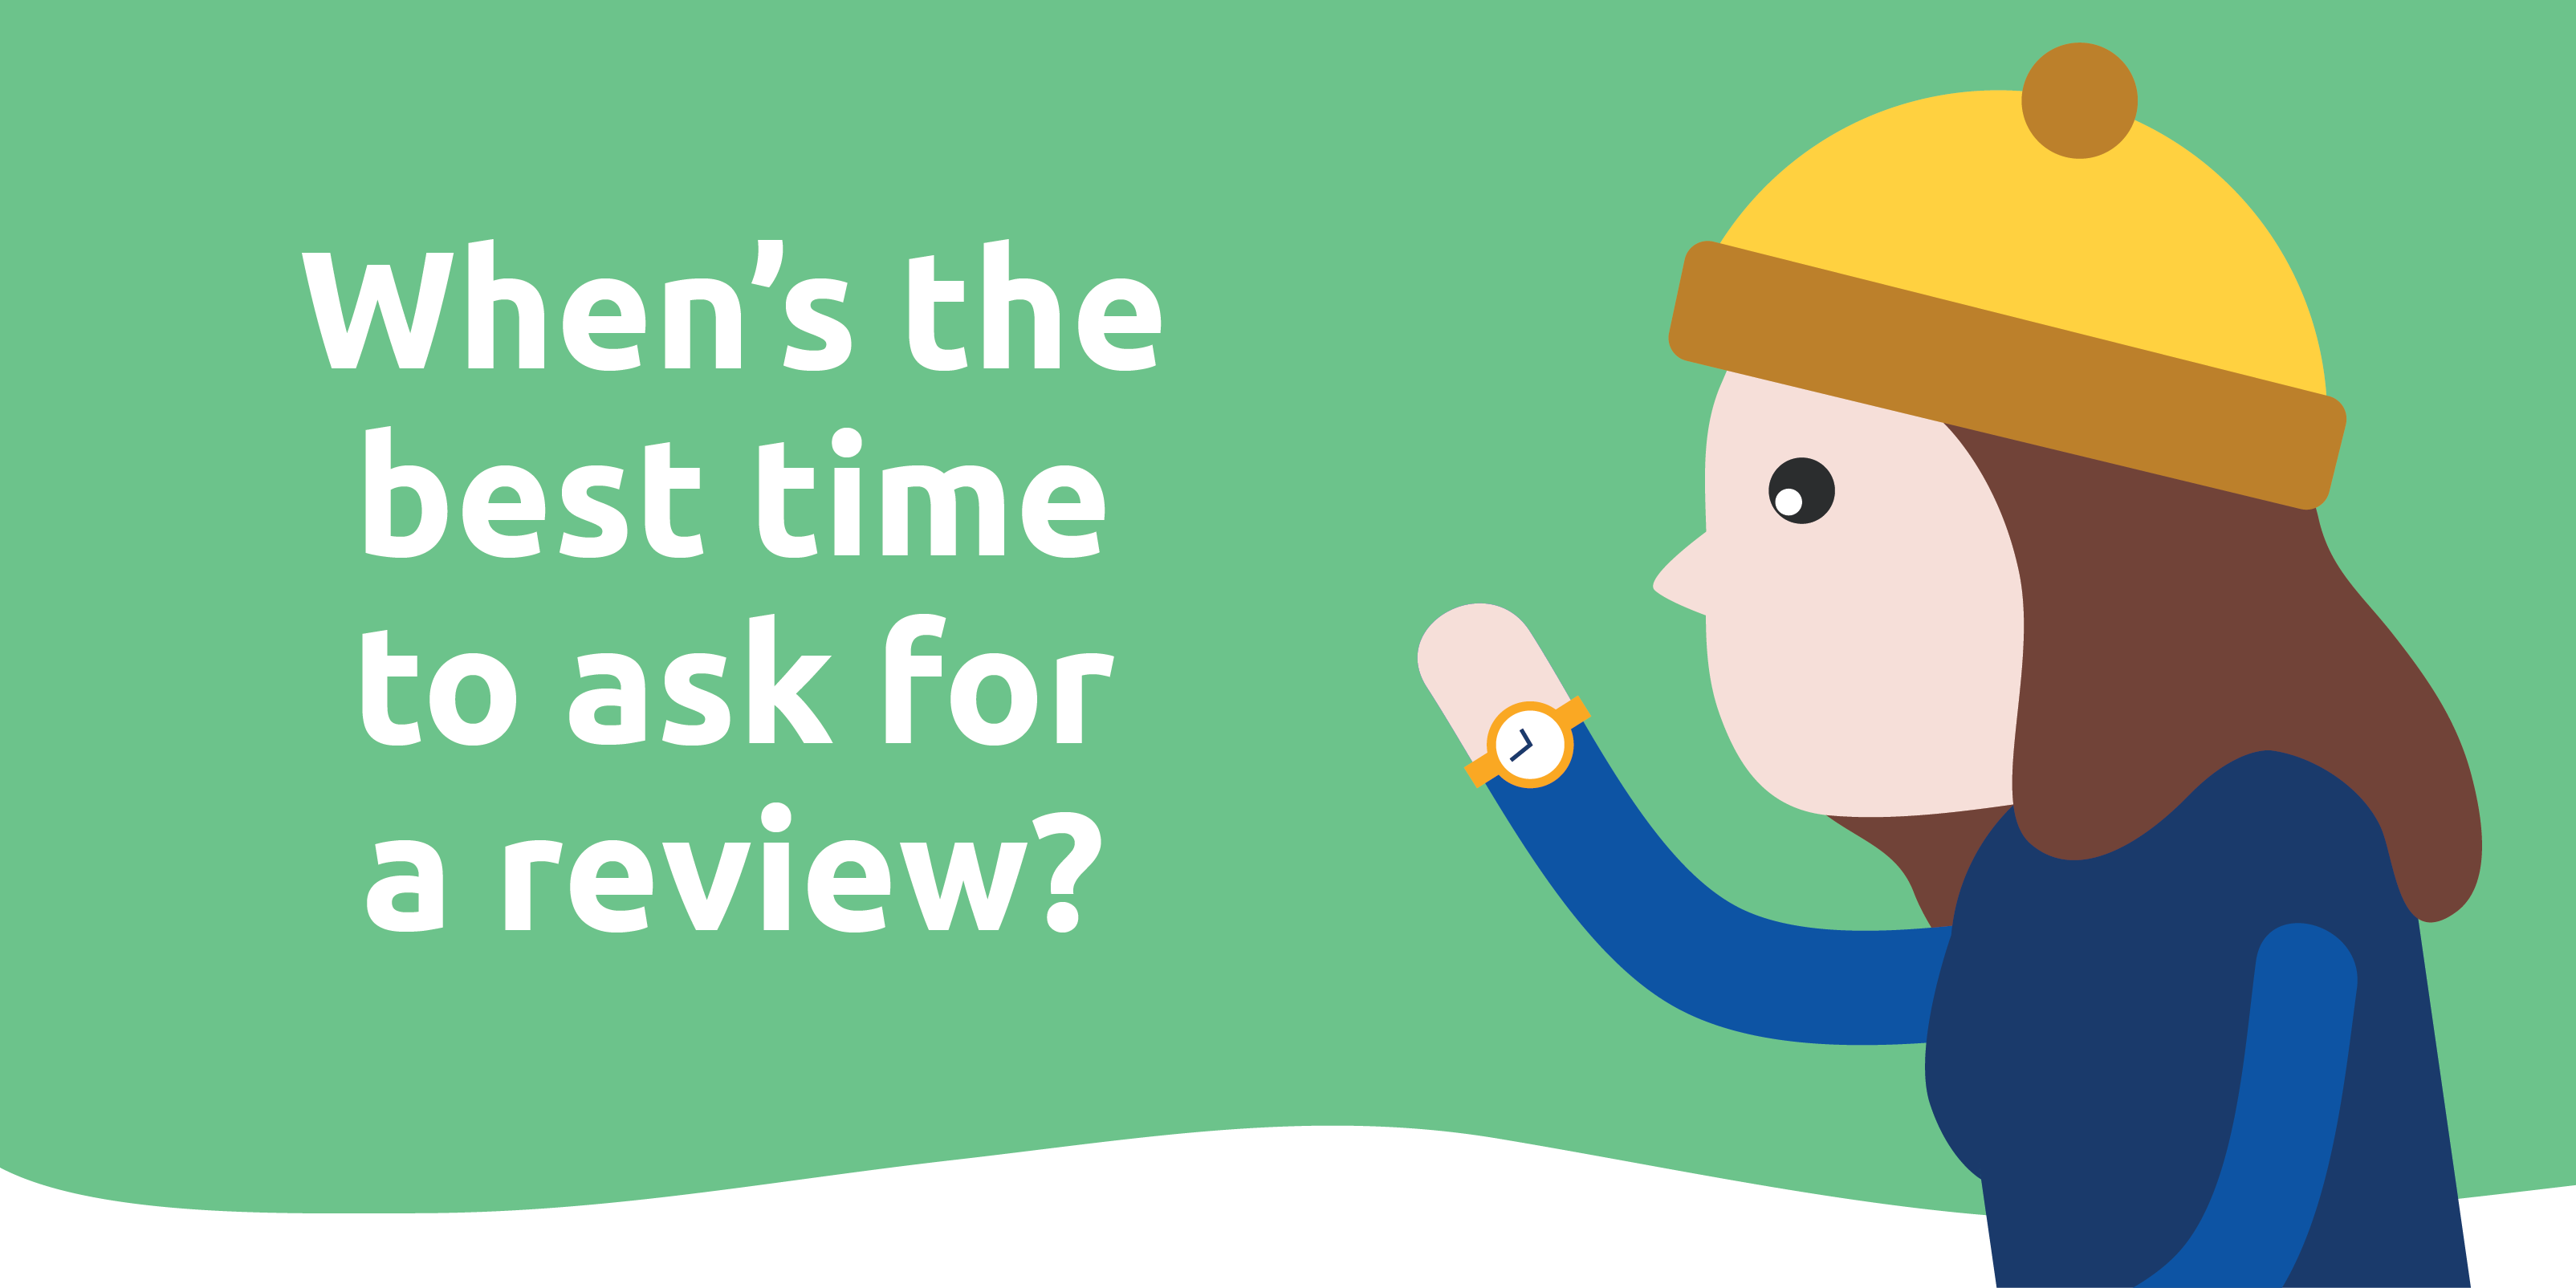 When's the best time to ask for a review?